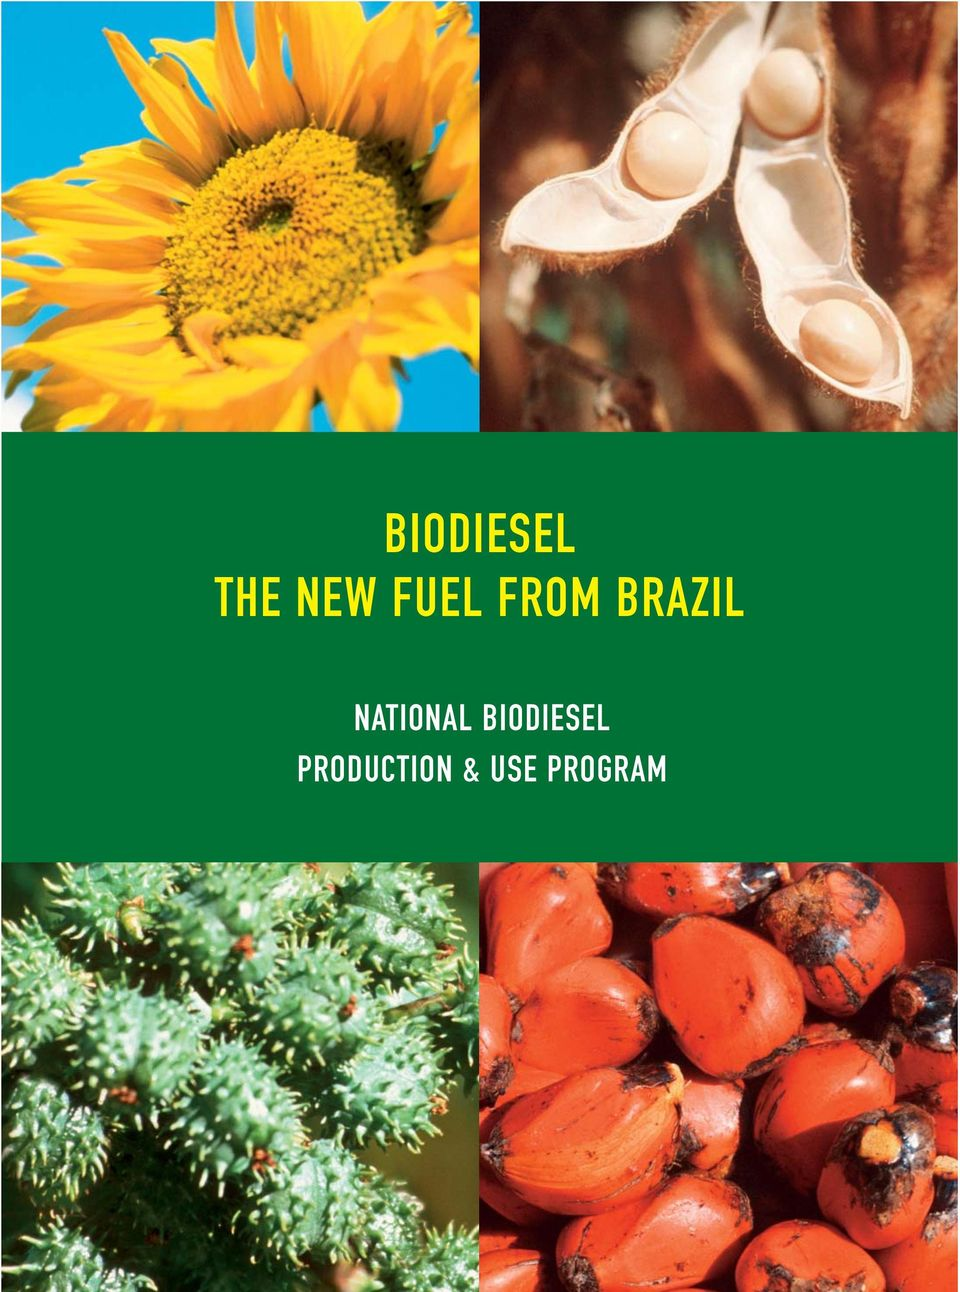 NATIONAL BIODIESEL